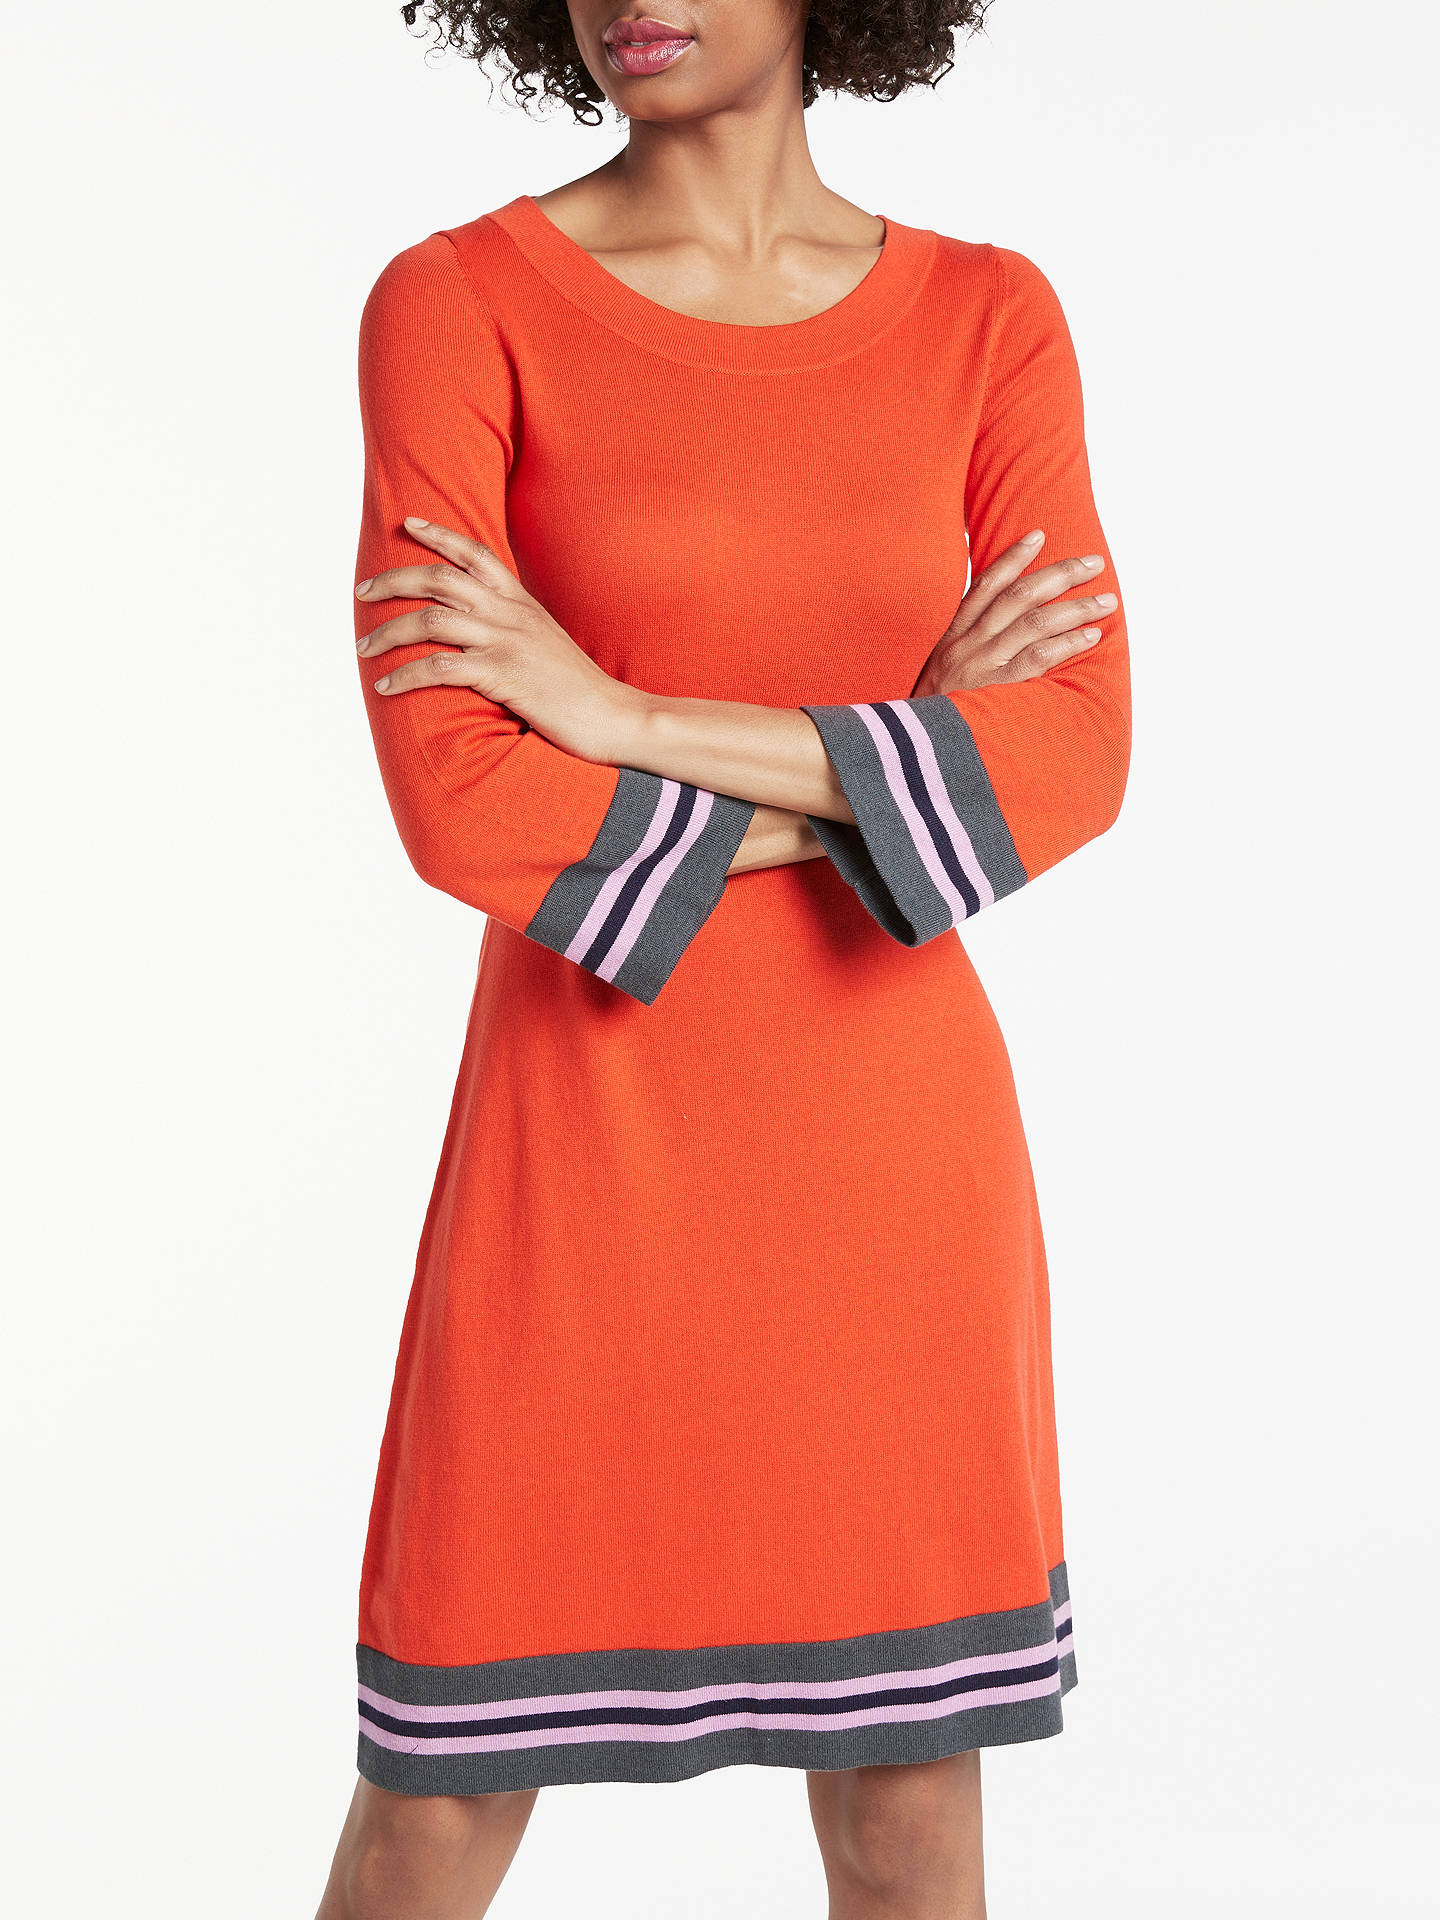 Buy Boden Trudy Knitted Dress, Red Pop, 8 Online at johnlewis.com